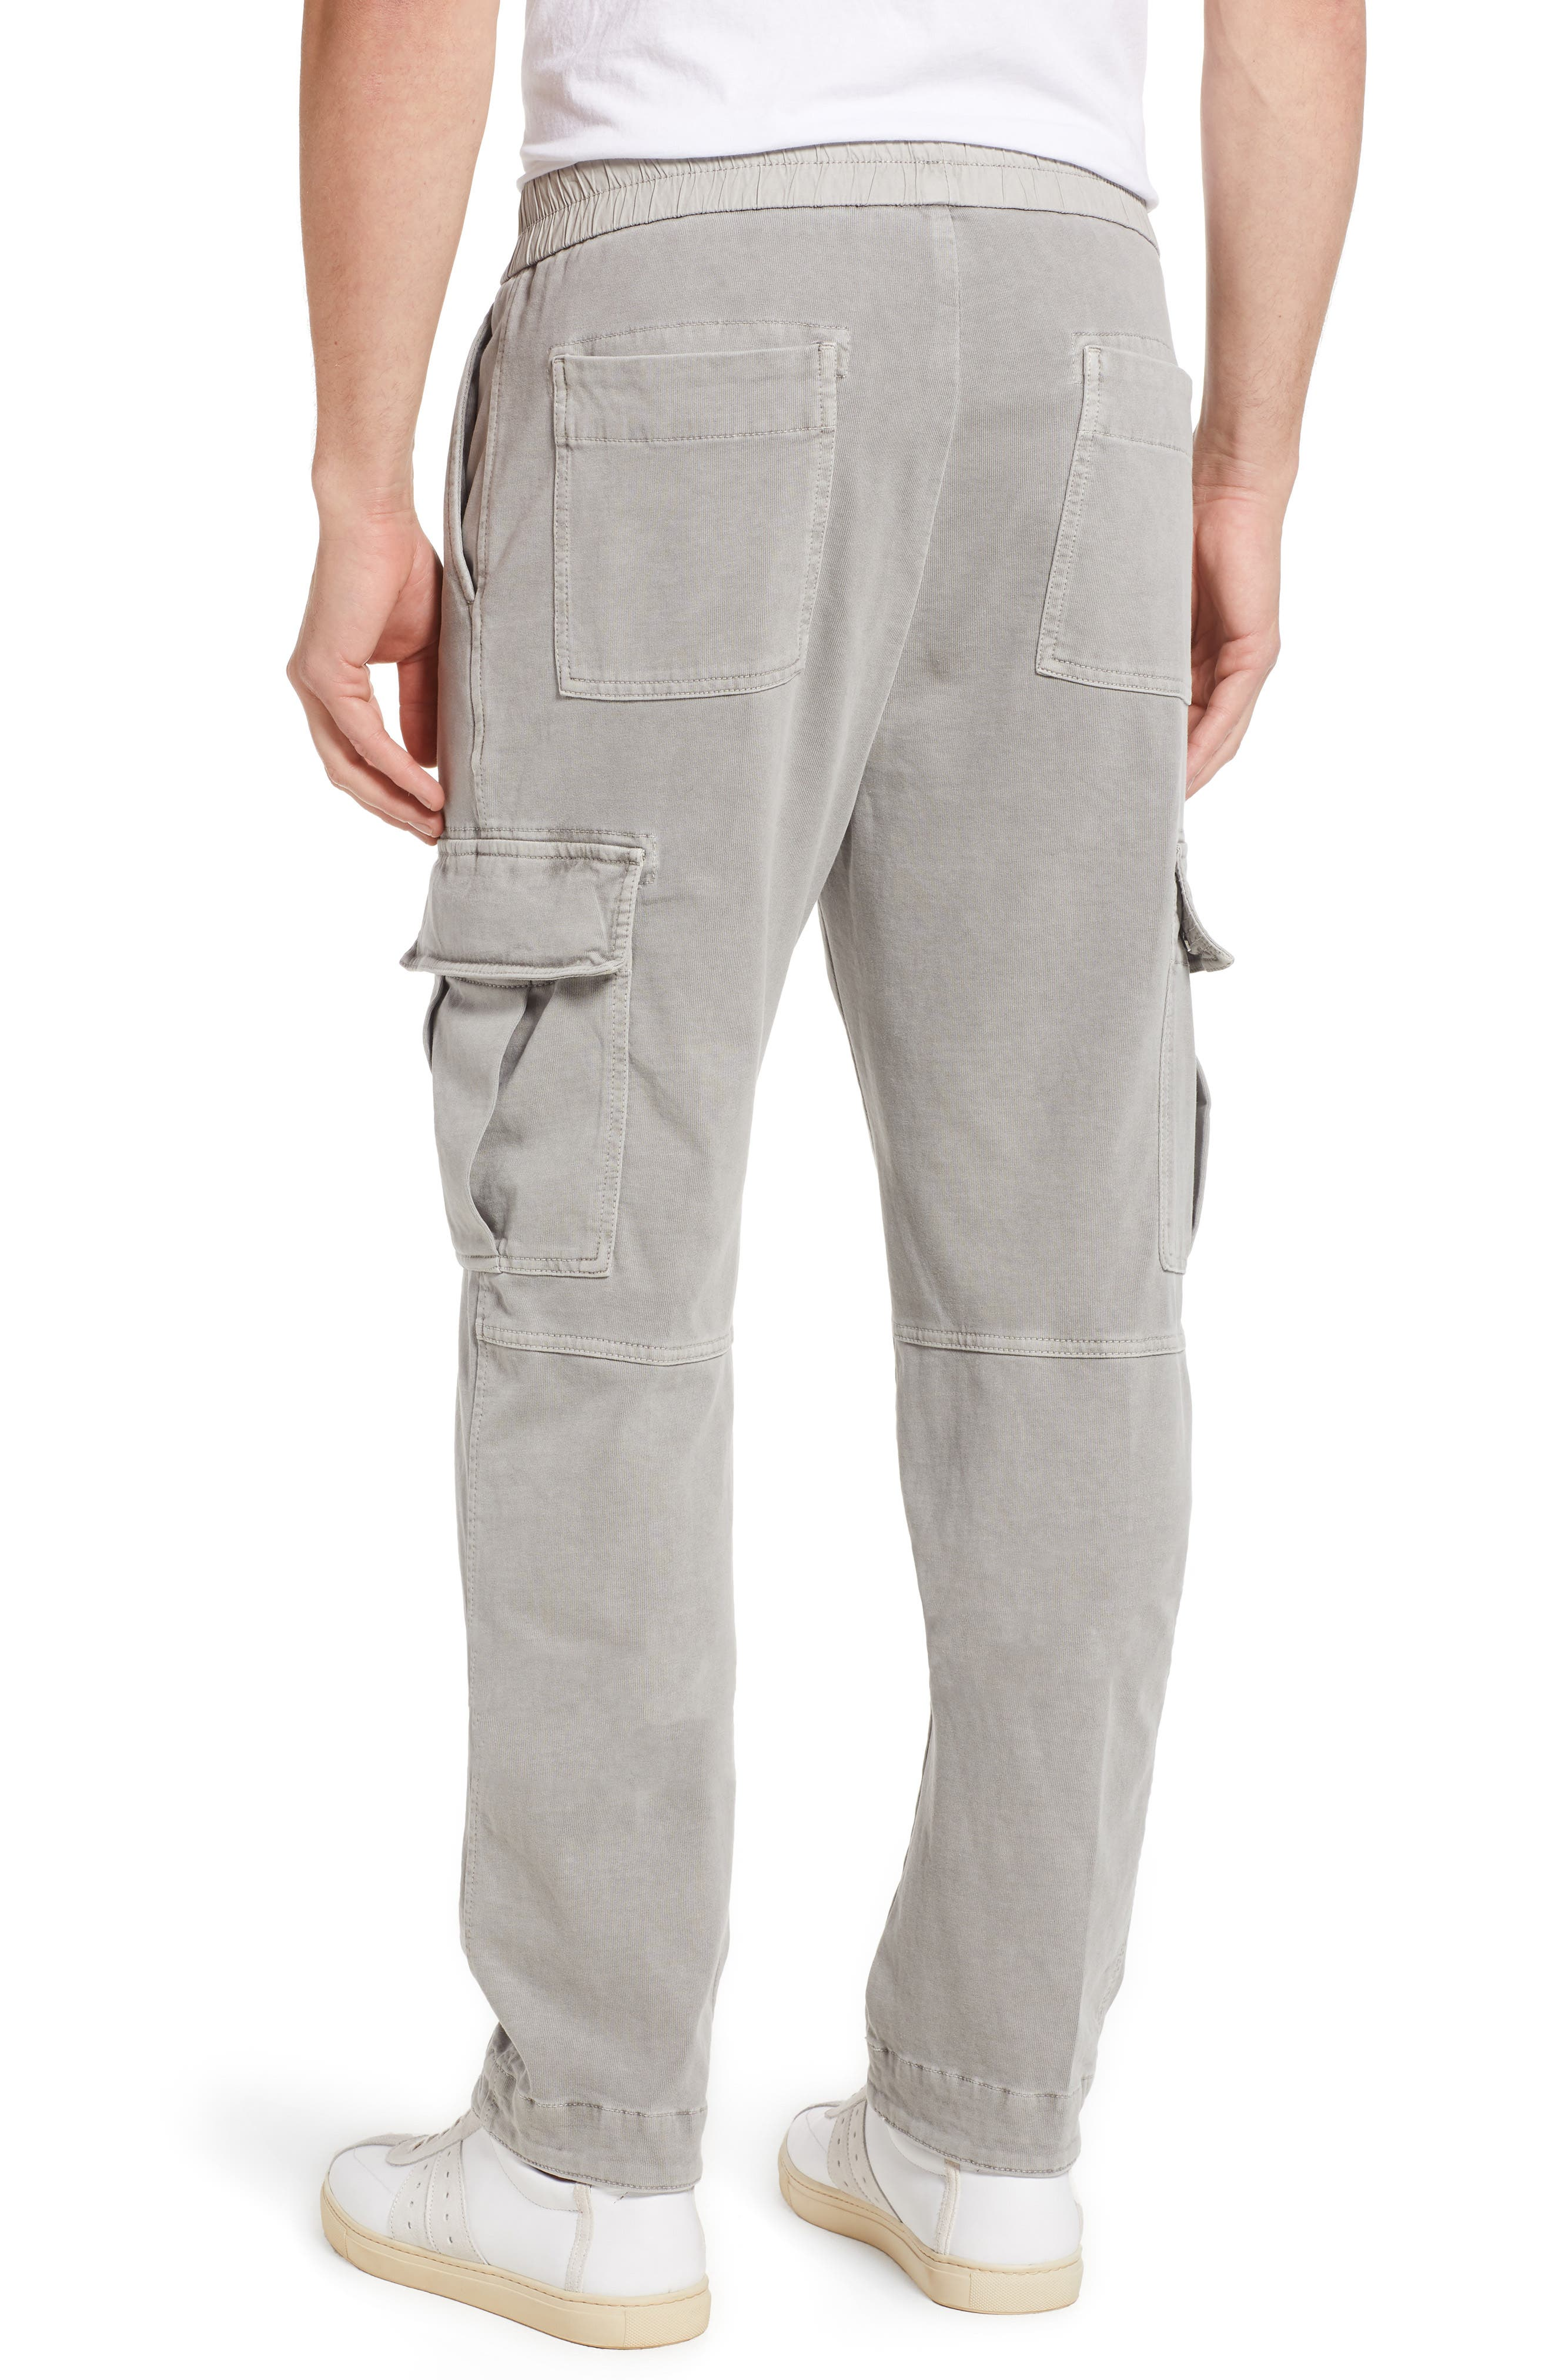 Cotton Jersey Relaxed Fit Cargo Pants,                             Alternate thumbnail 2, color,                             Paver Pigment